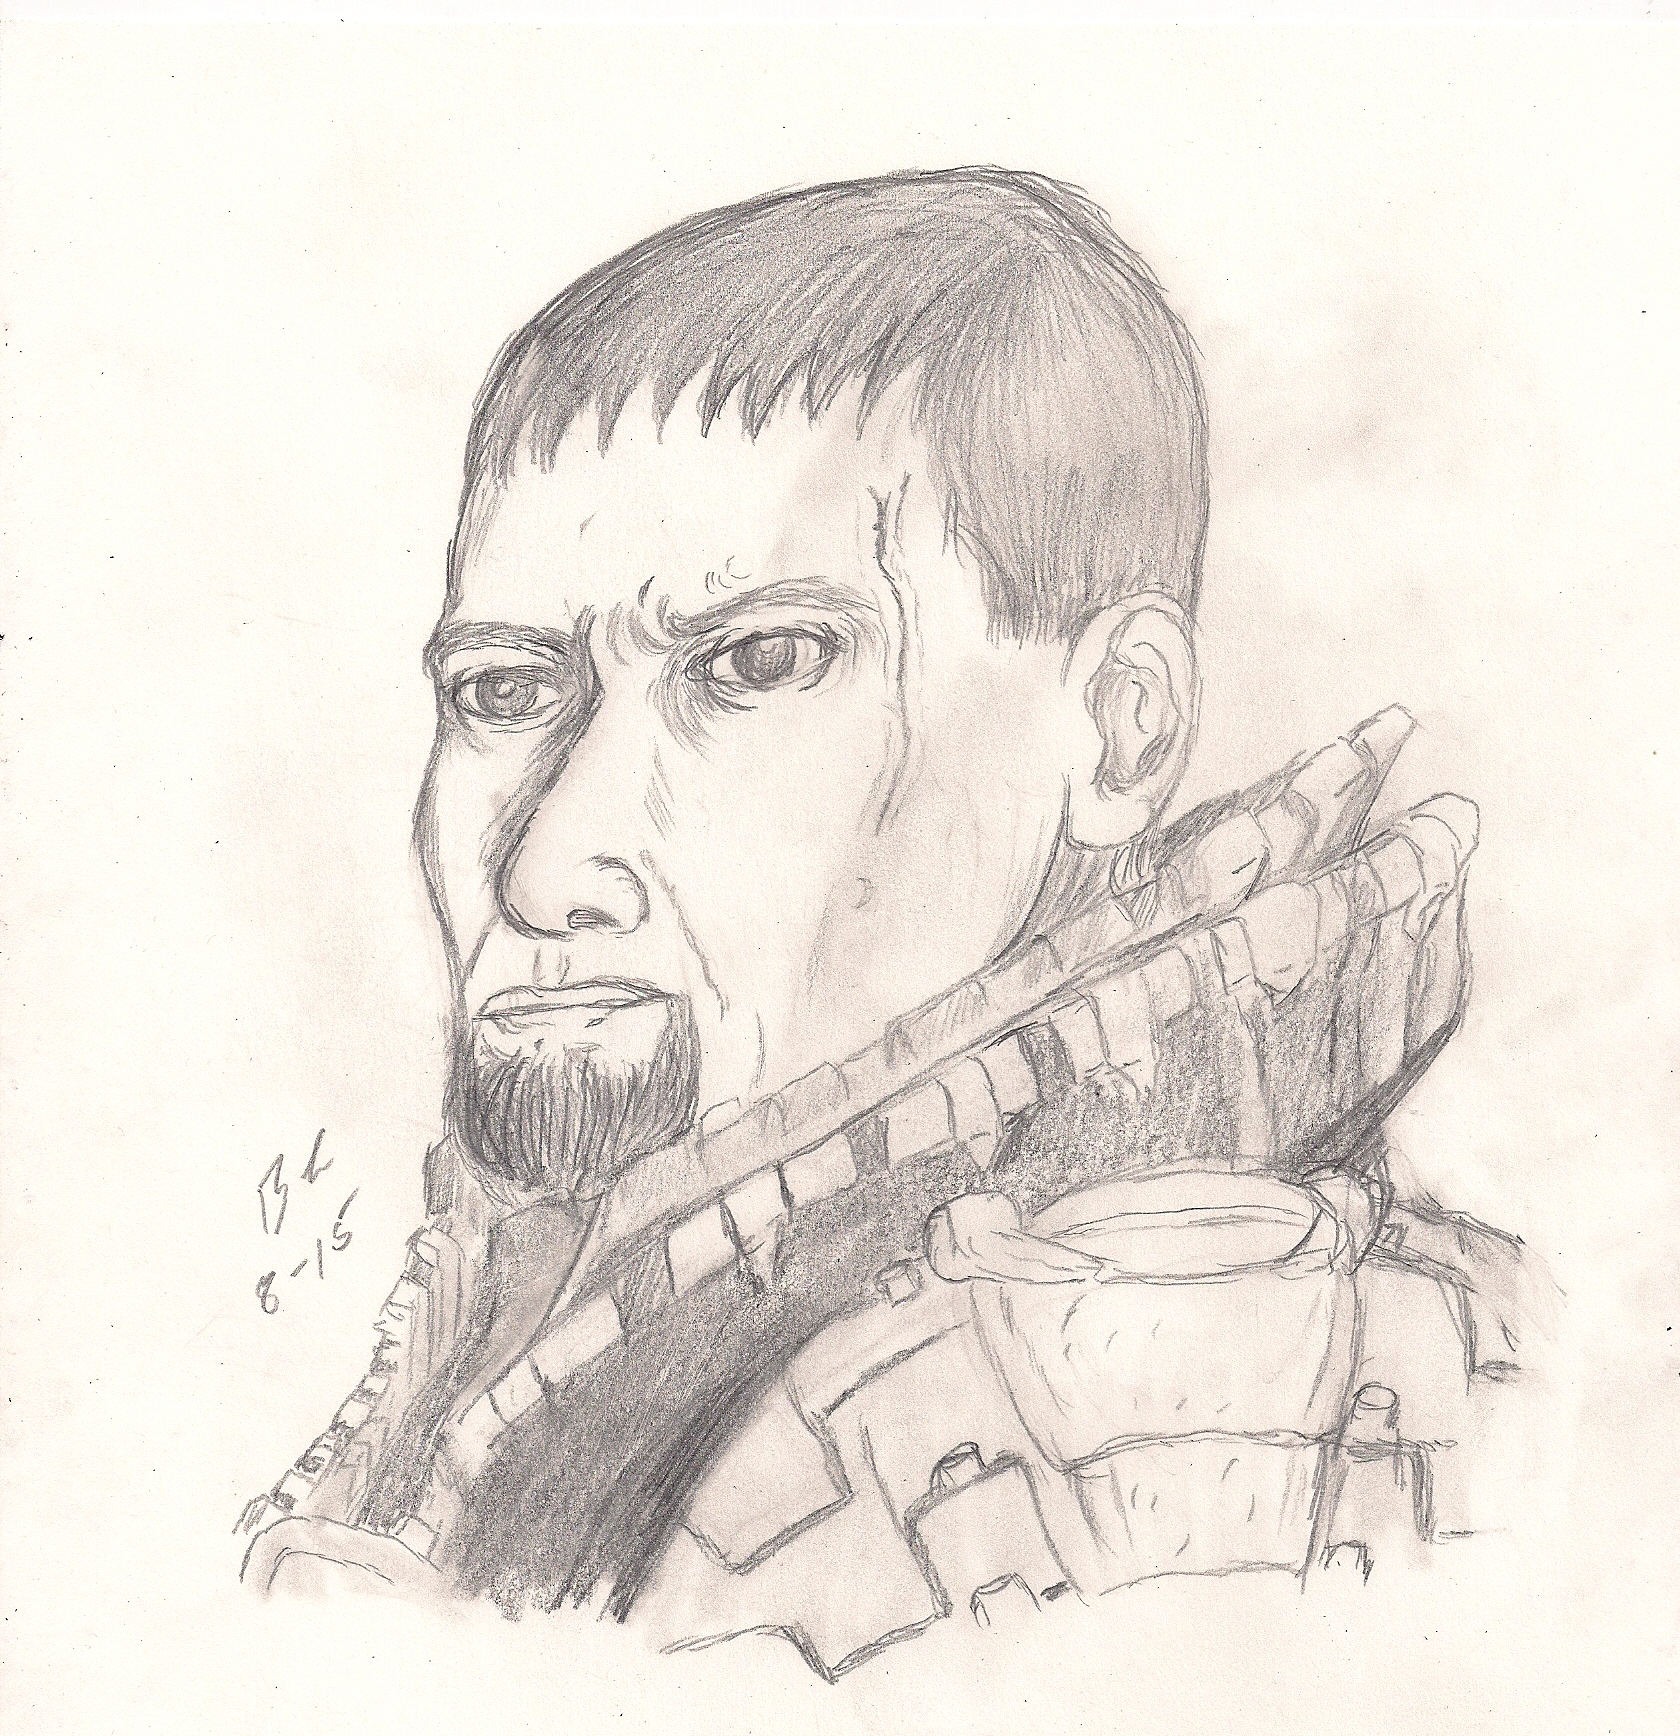 movie inspired General Zod II by Bobby77